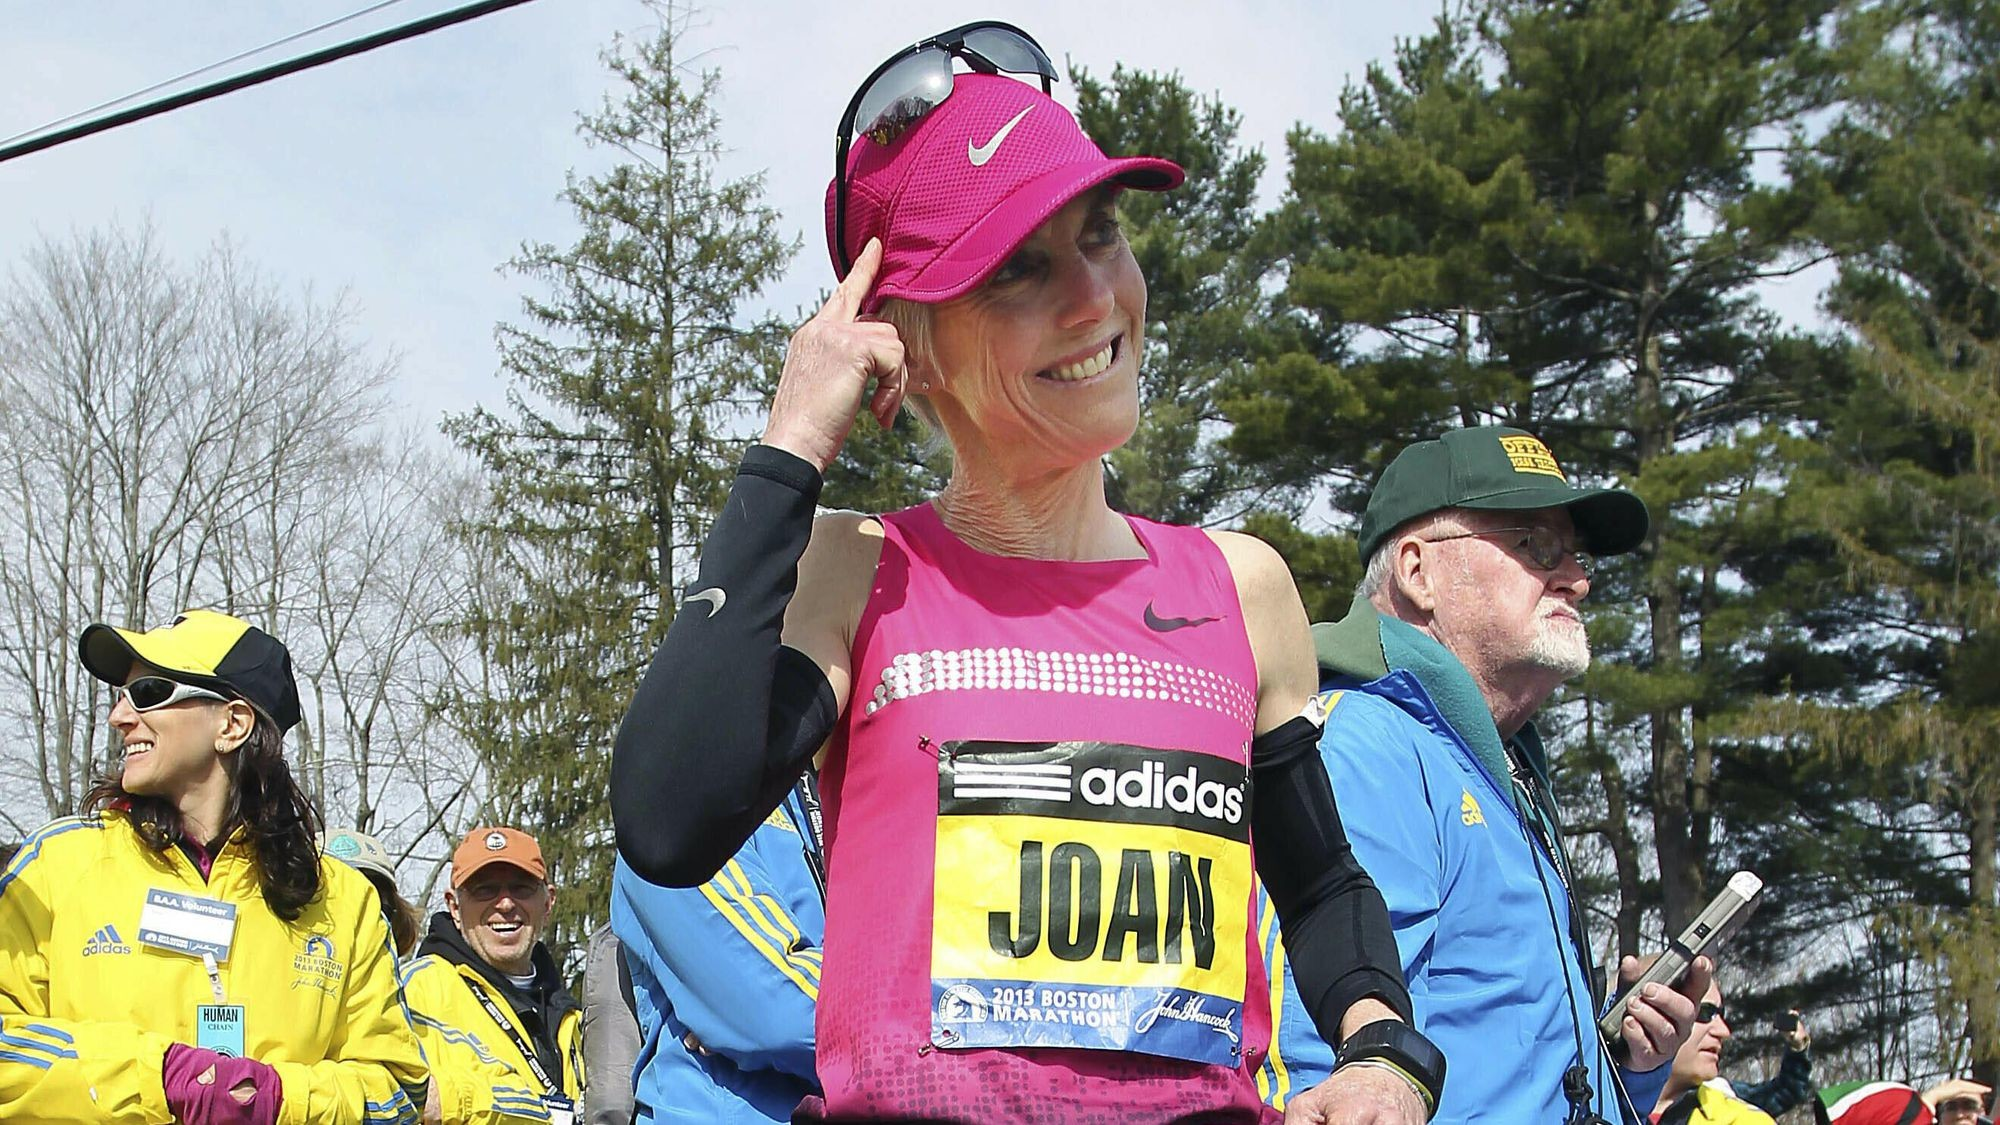 Two-time champion and Olympic gold medalist Joan Benoit Samuelson plans to run the Boston Marathon again at age 61